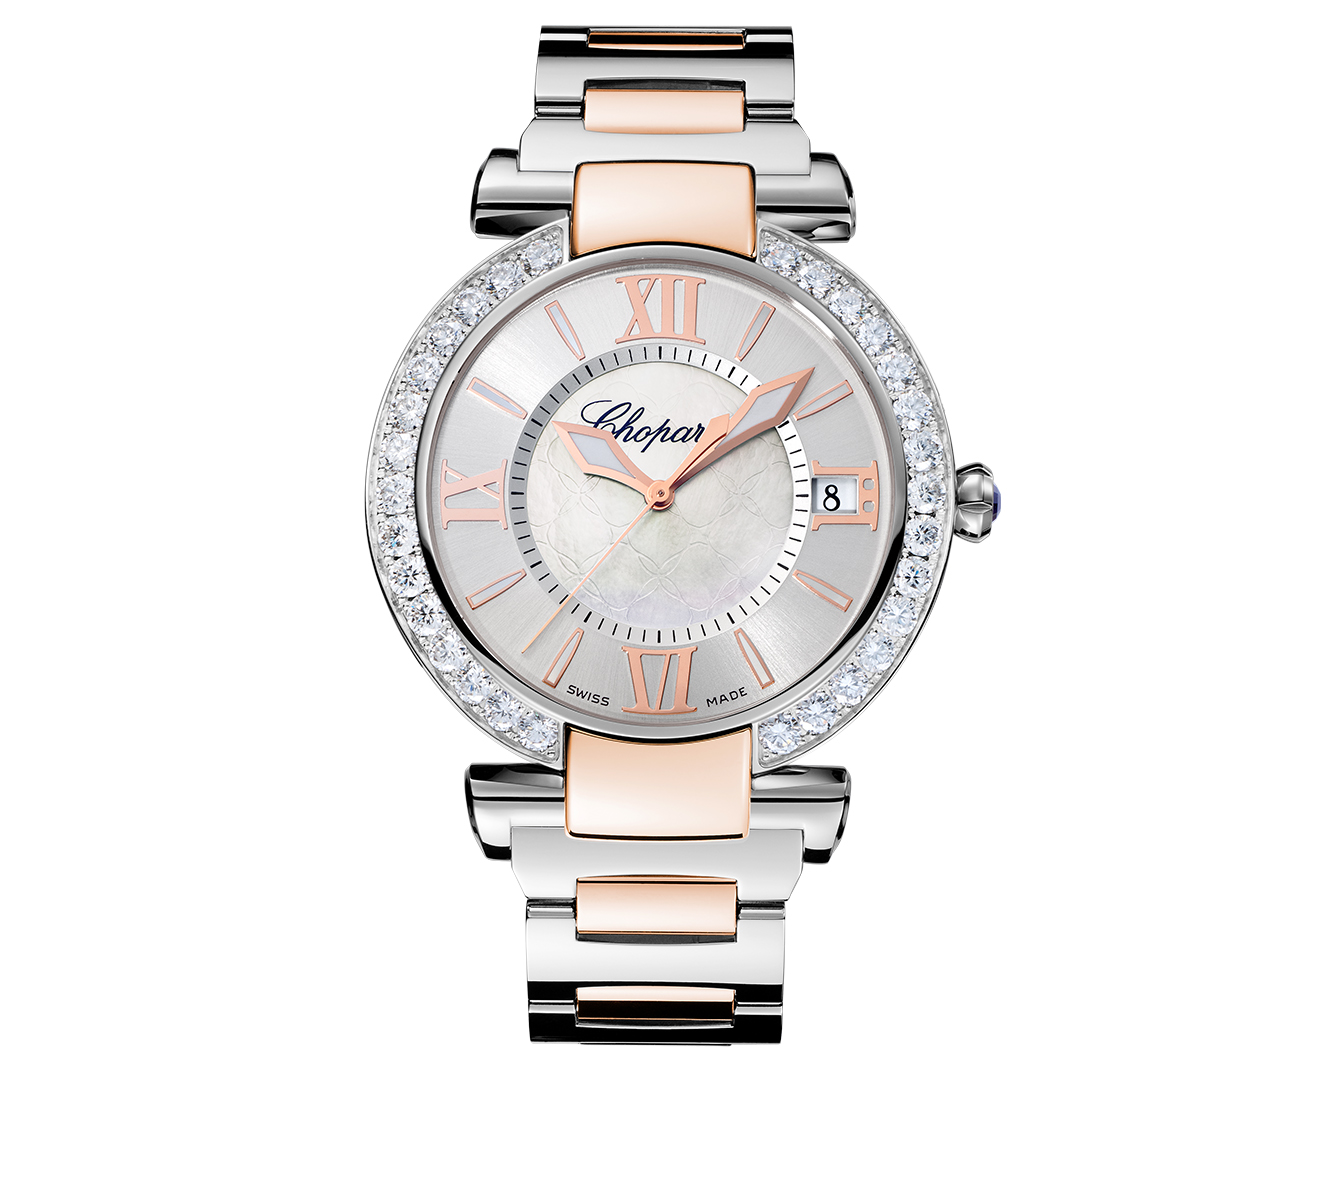 Часы Imperiale Chopard Imperiale 388531-6004 - фото 1 – Mercury